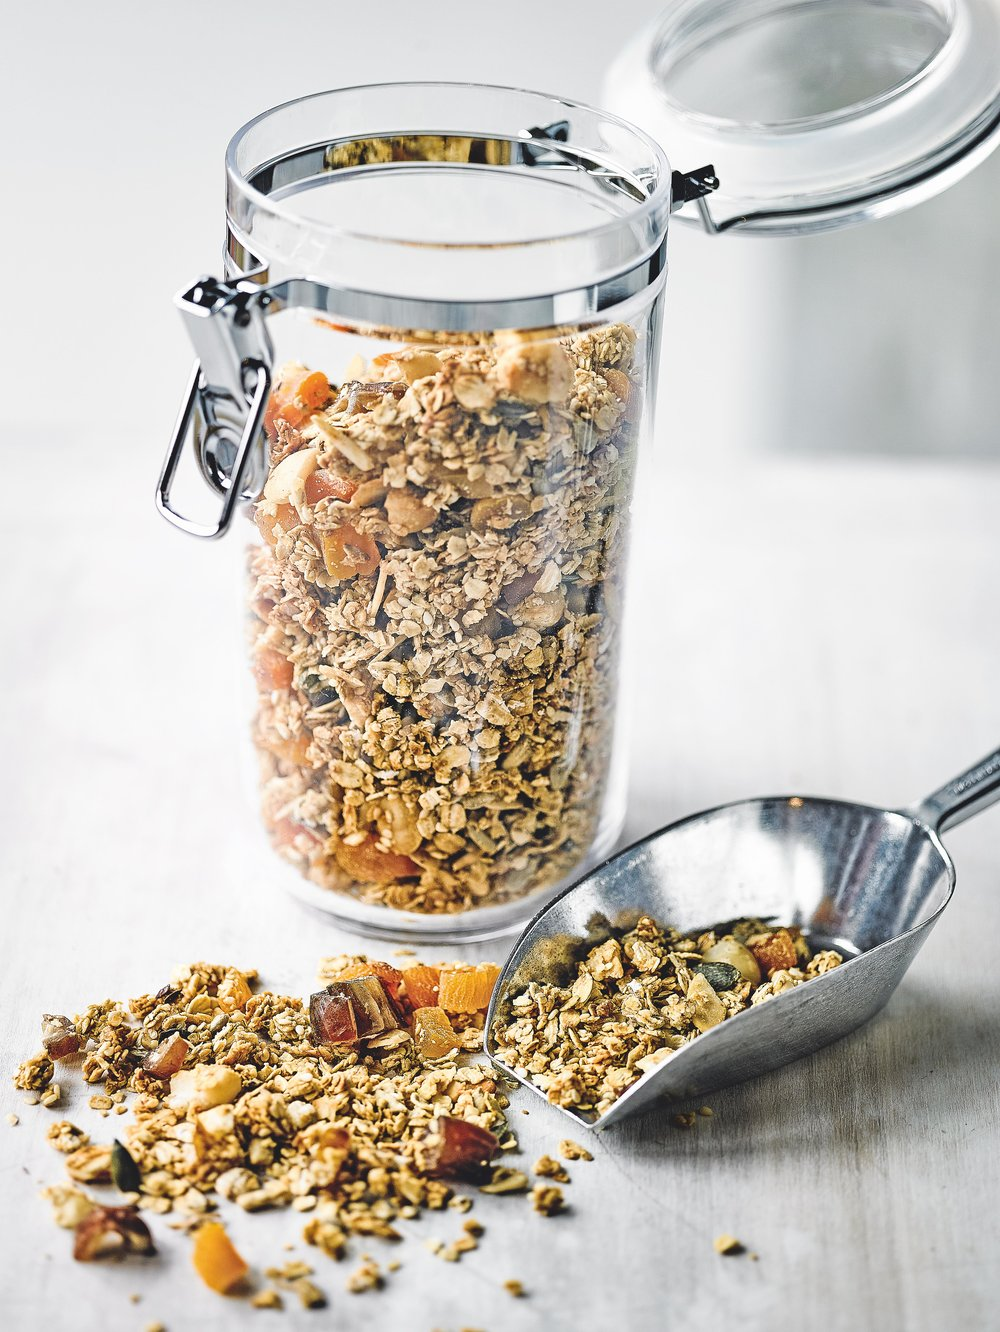 20171206_Waitrose Weekend_RT_PW_SR958_WK388_Martha Bakes_Prep_Honey & Sesame Granola_00058.jpg